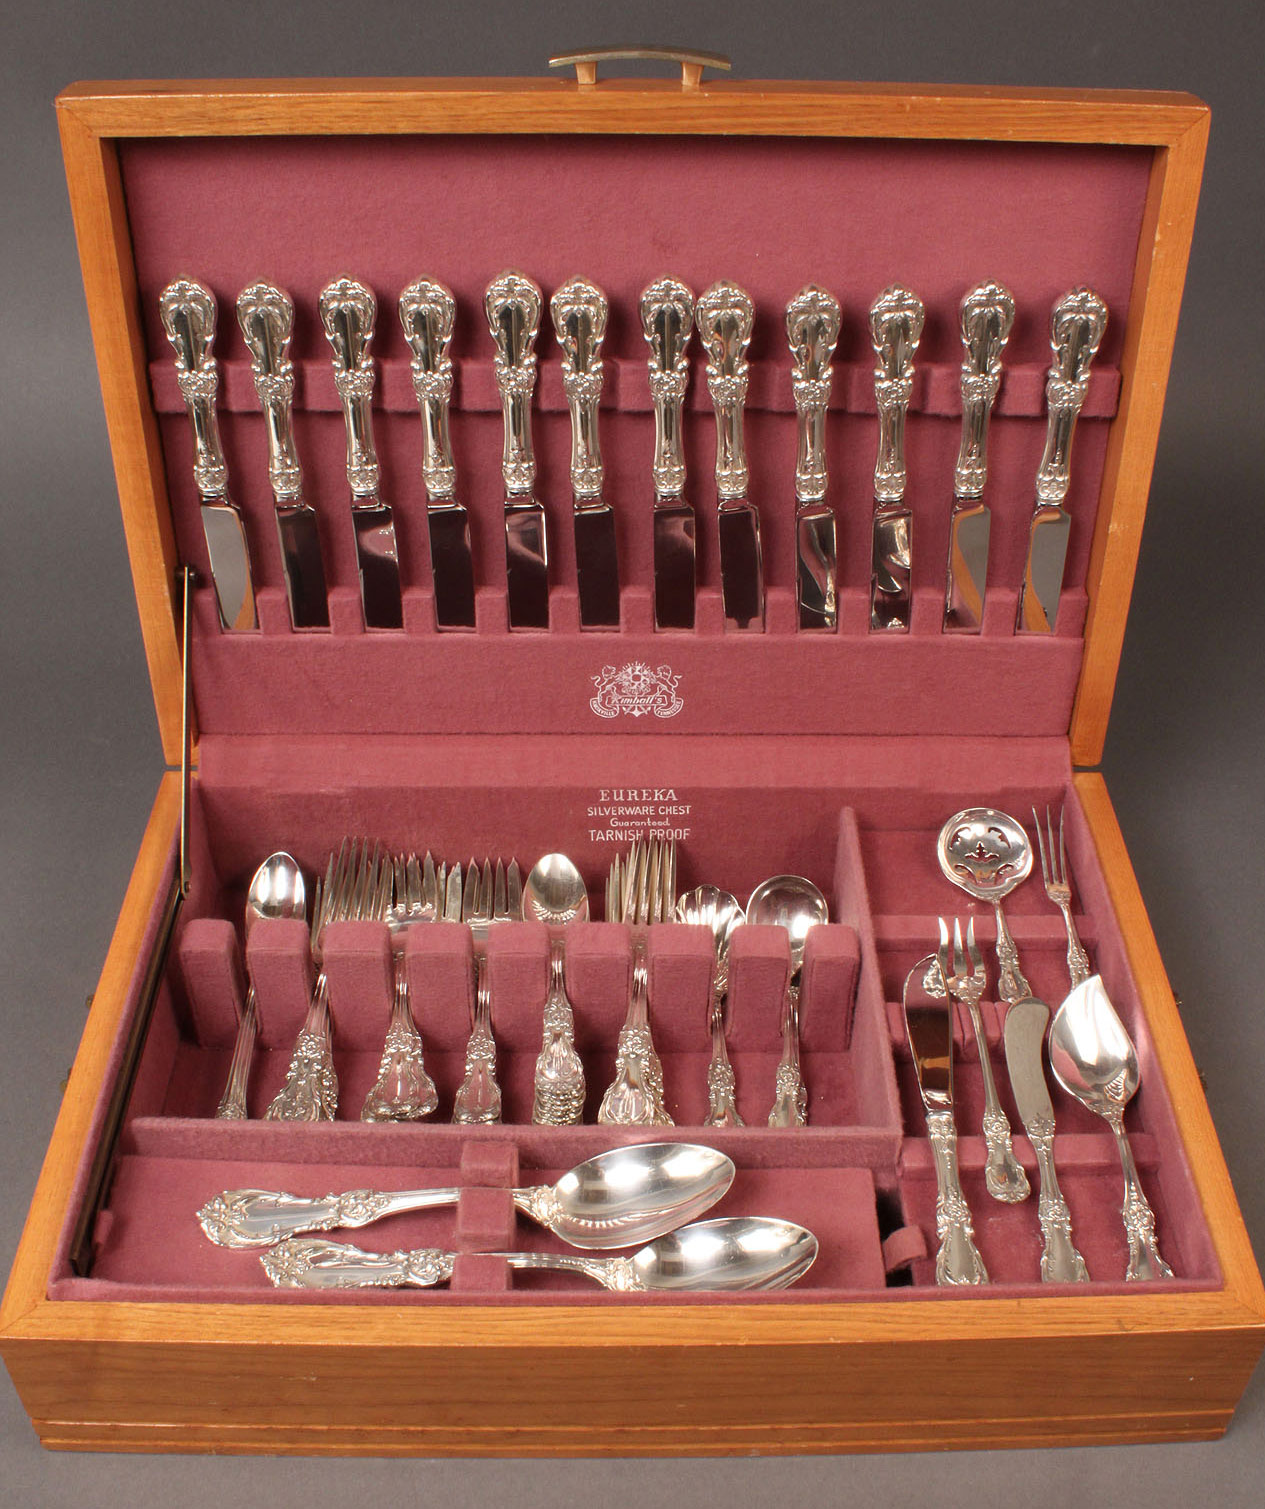 90: Reed & Barton Burgundy sterling flatware, 64 pcs wi